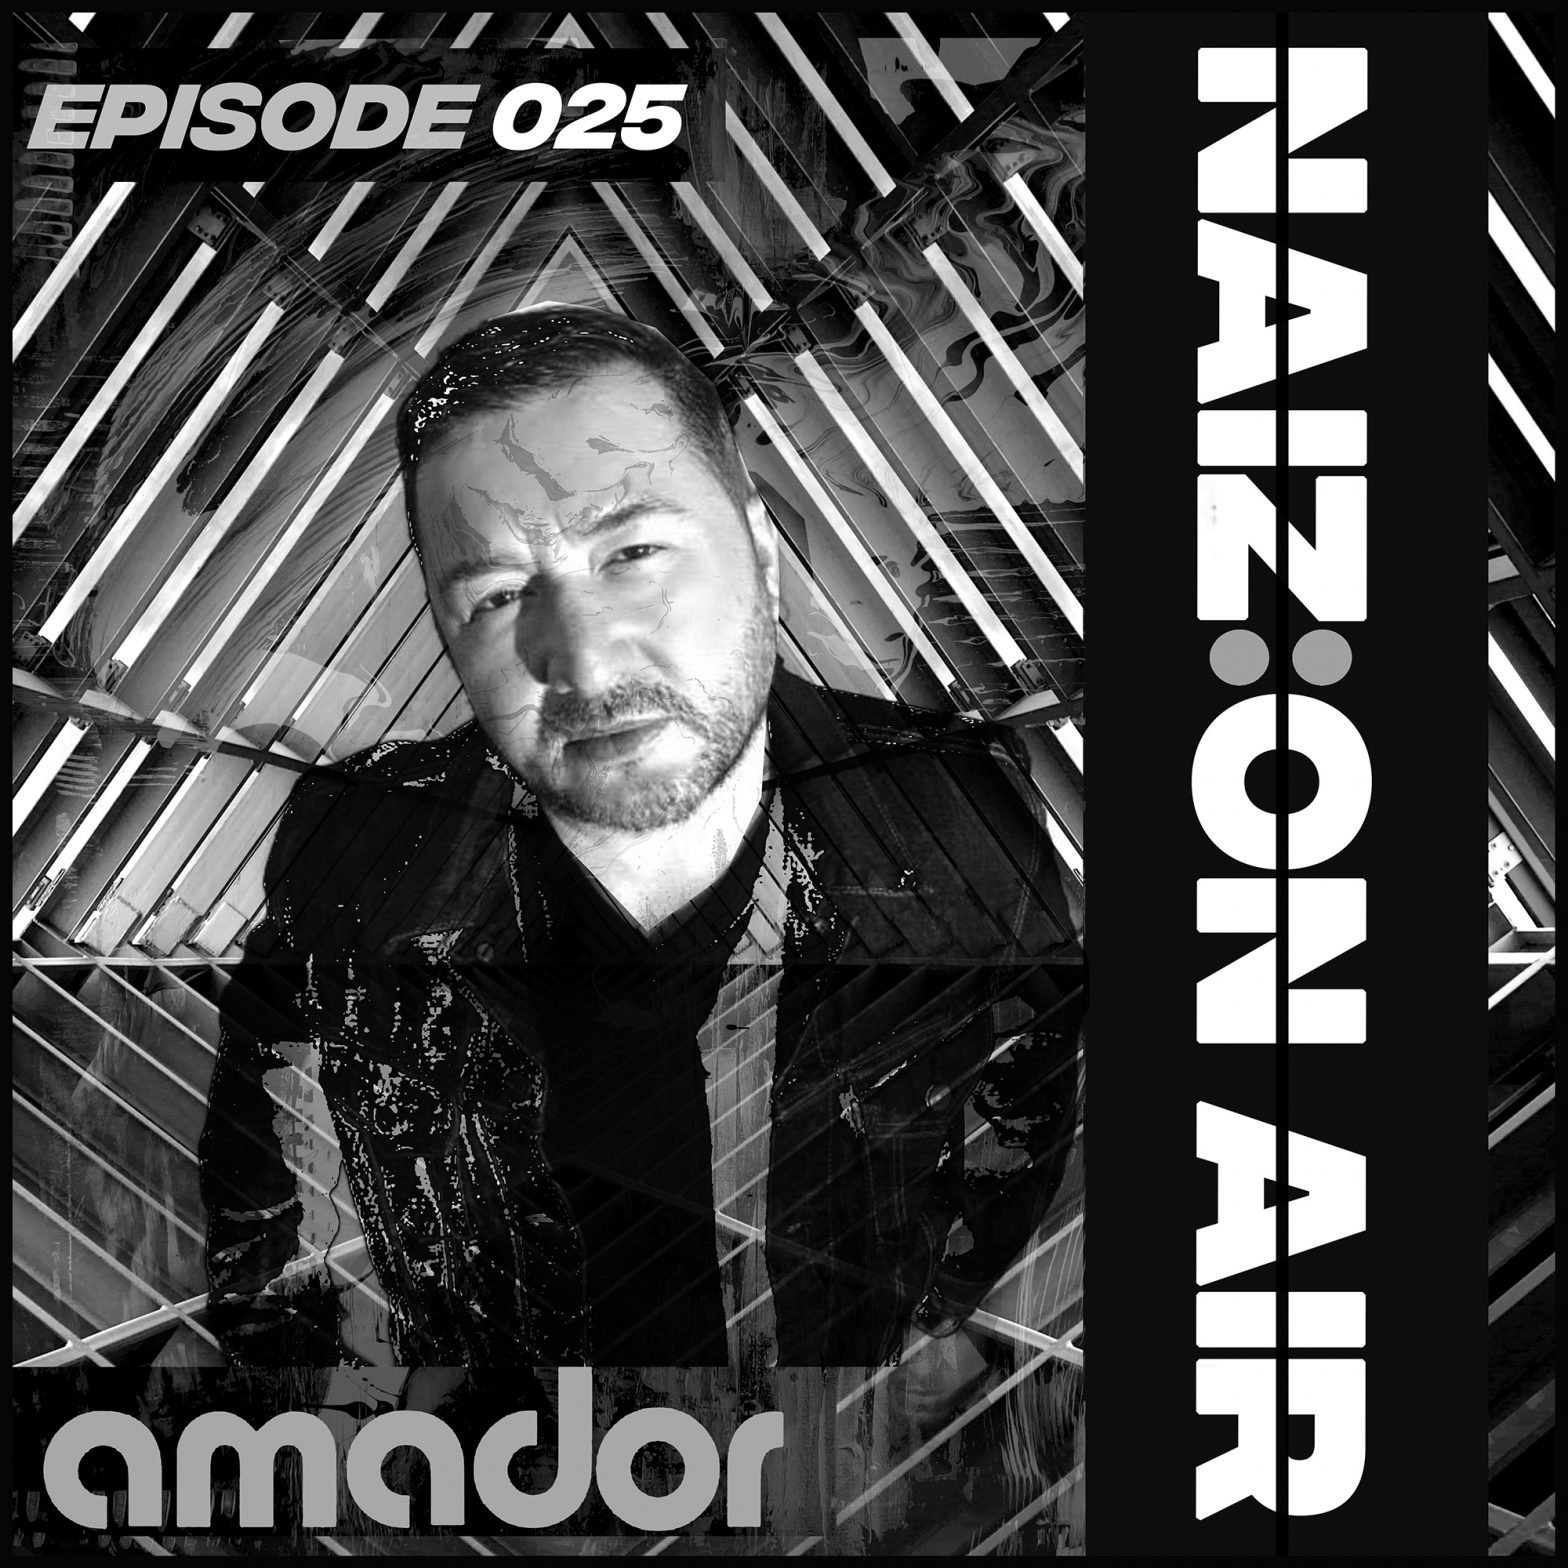 naizon_naizon_air_025_with_eddie_amador